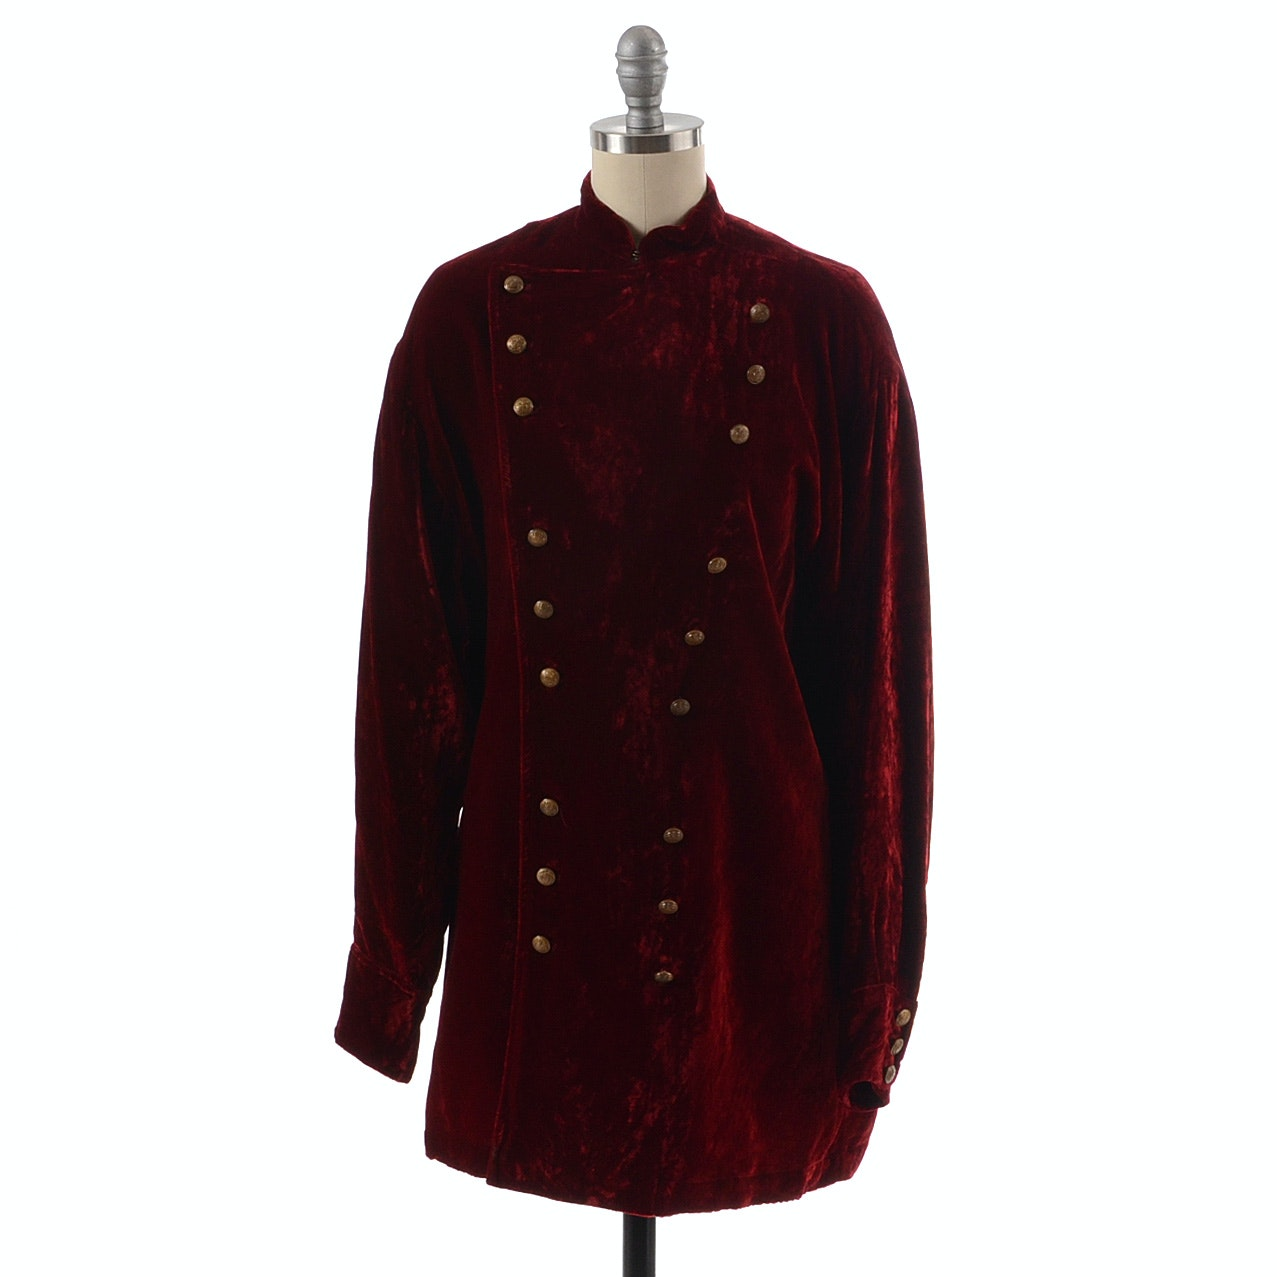 Ralph Lauren Country Red Velvet Military Style Jacket with Eagle Shield Brasstone Buttons